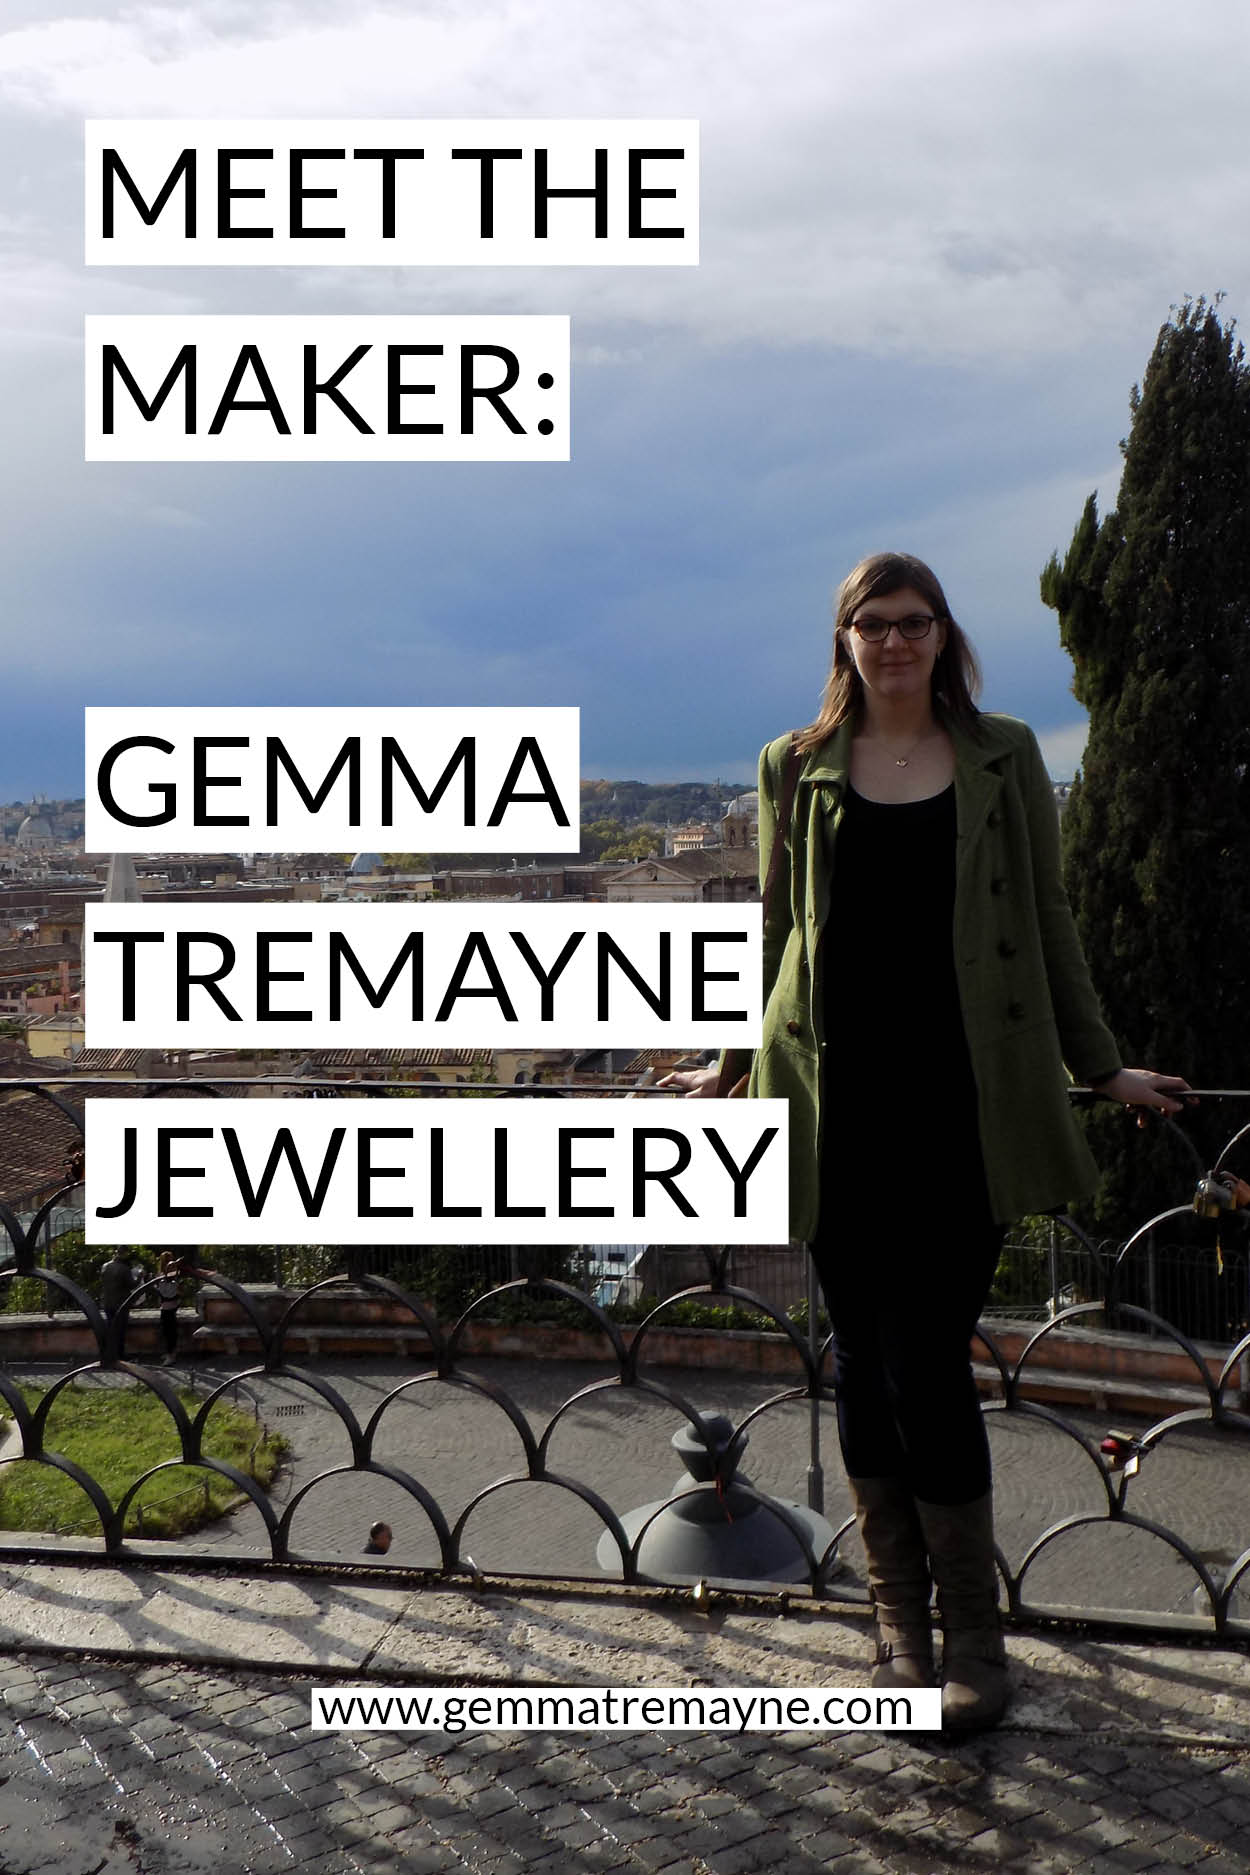 Meet the Maker: Gemma Tremayne Jewellery